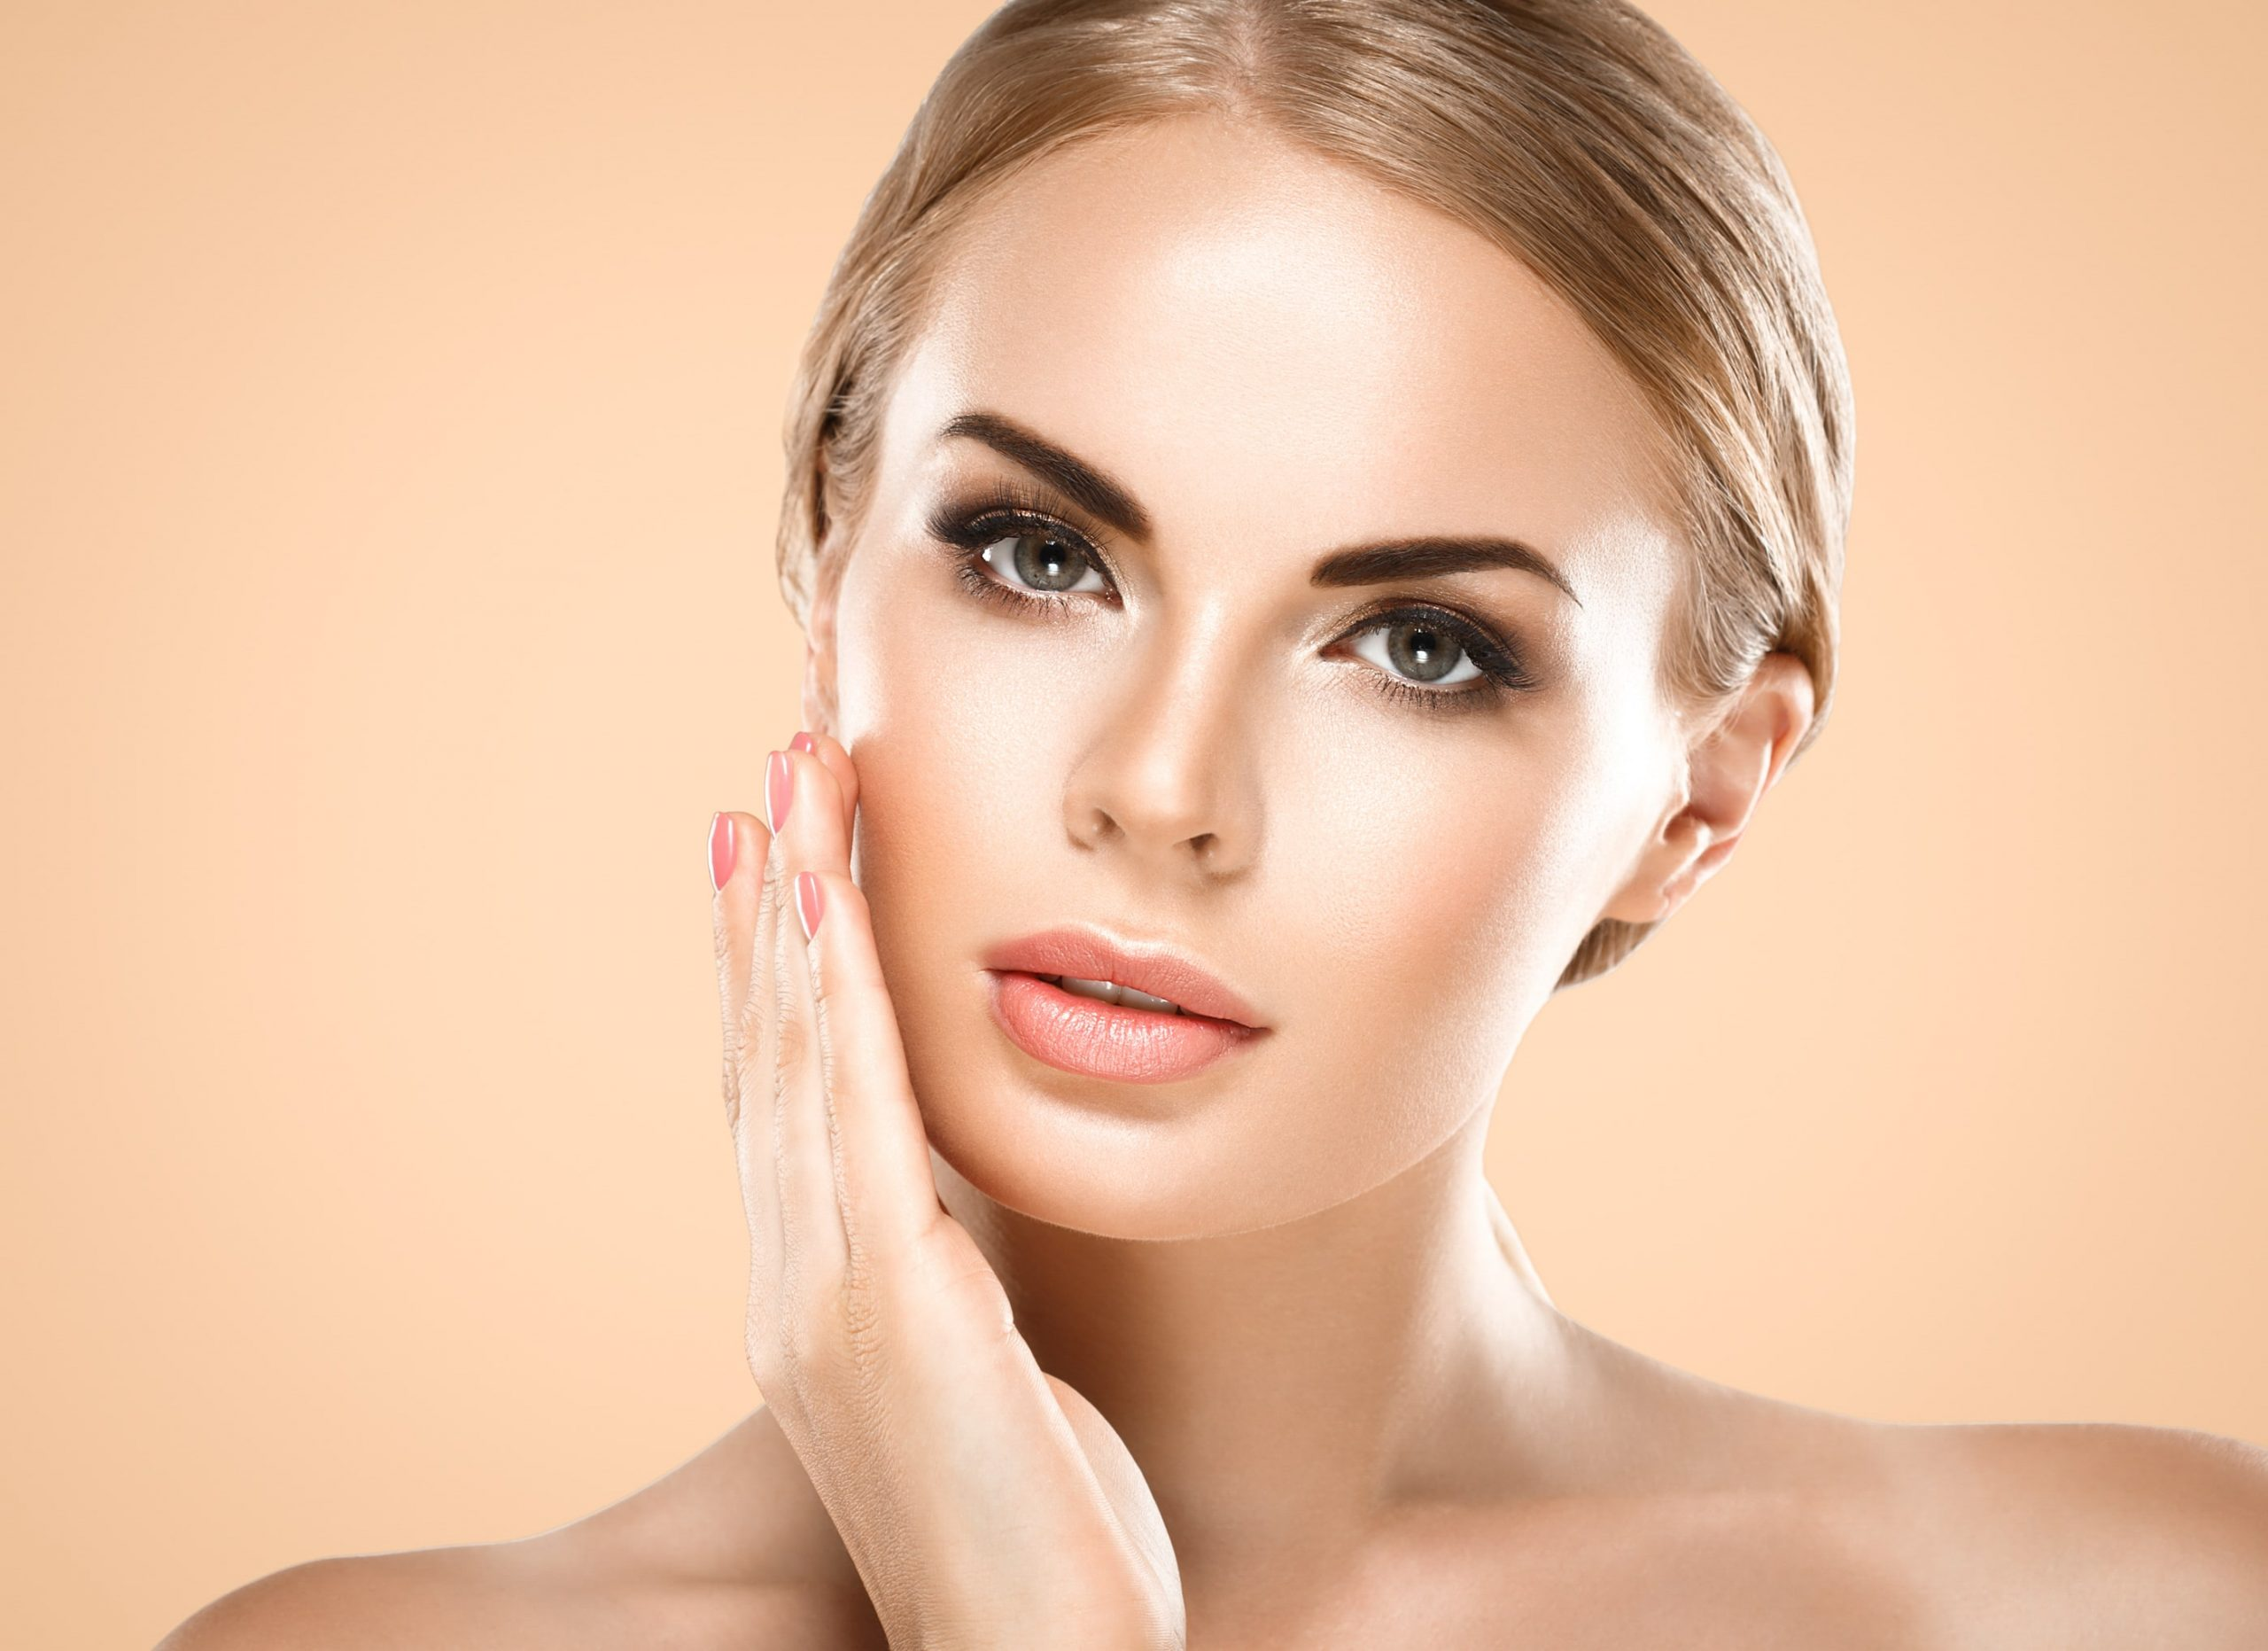 Techniques to Help You Have Smooth and Glowing Skin